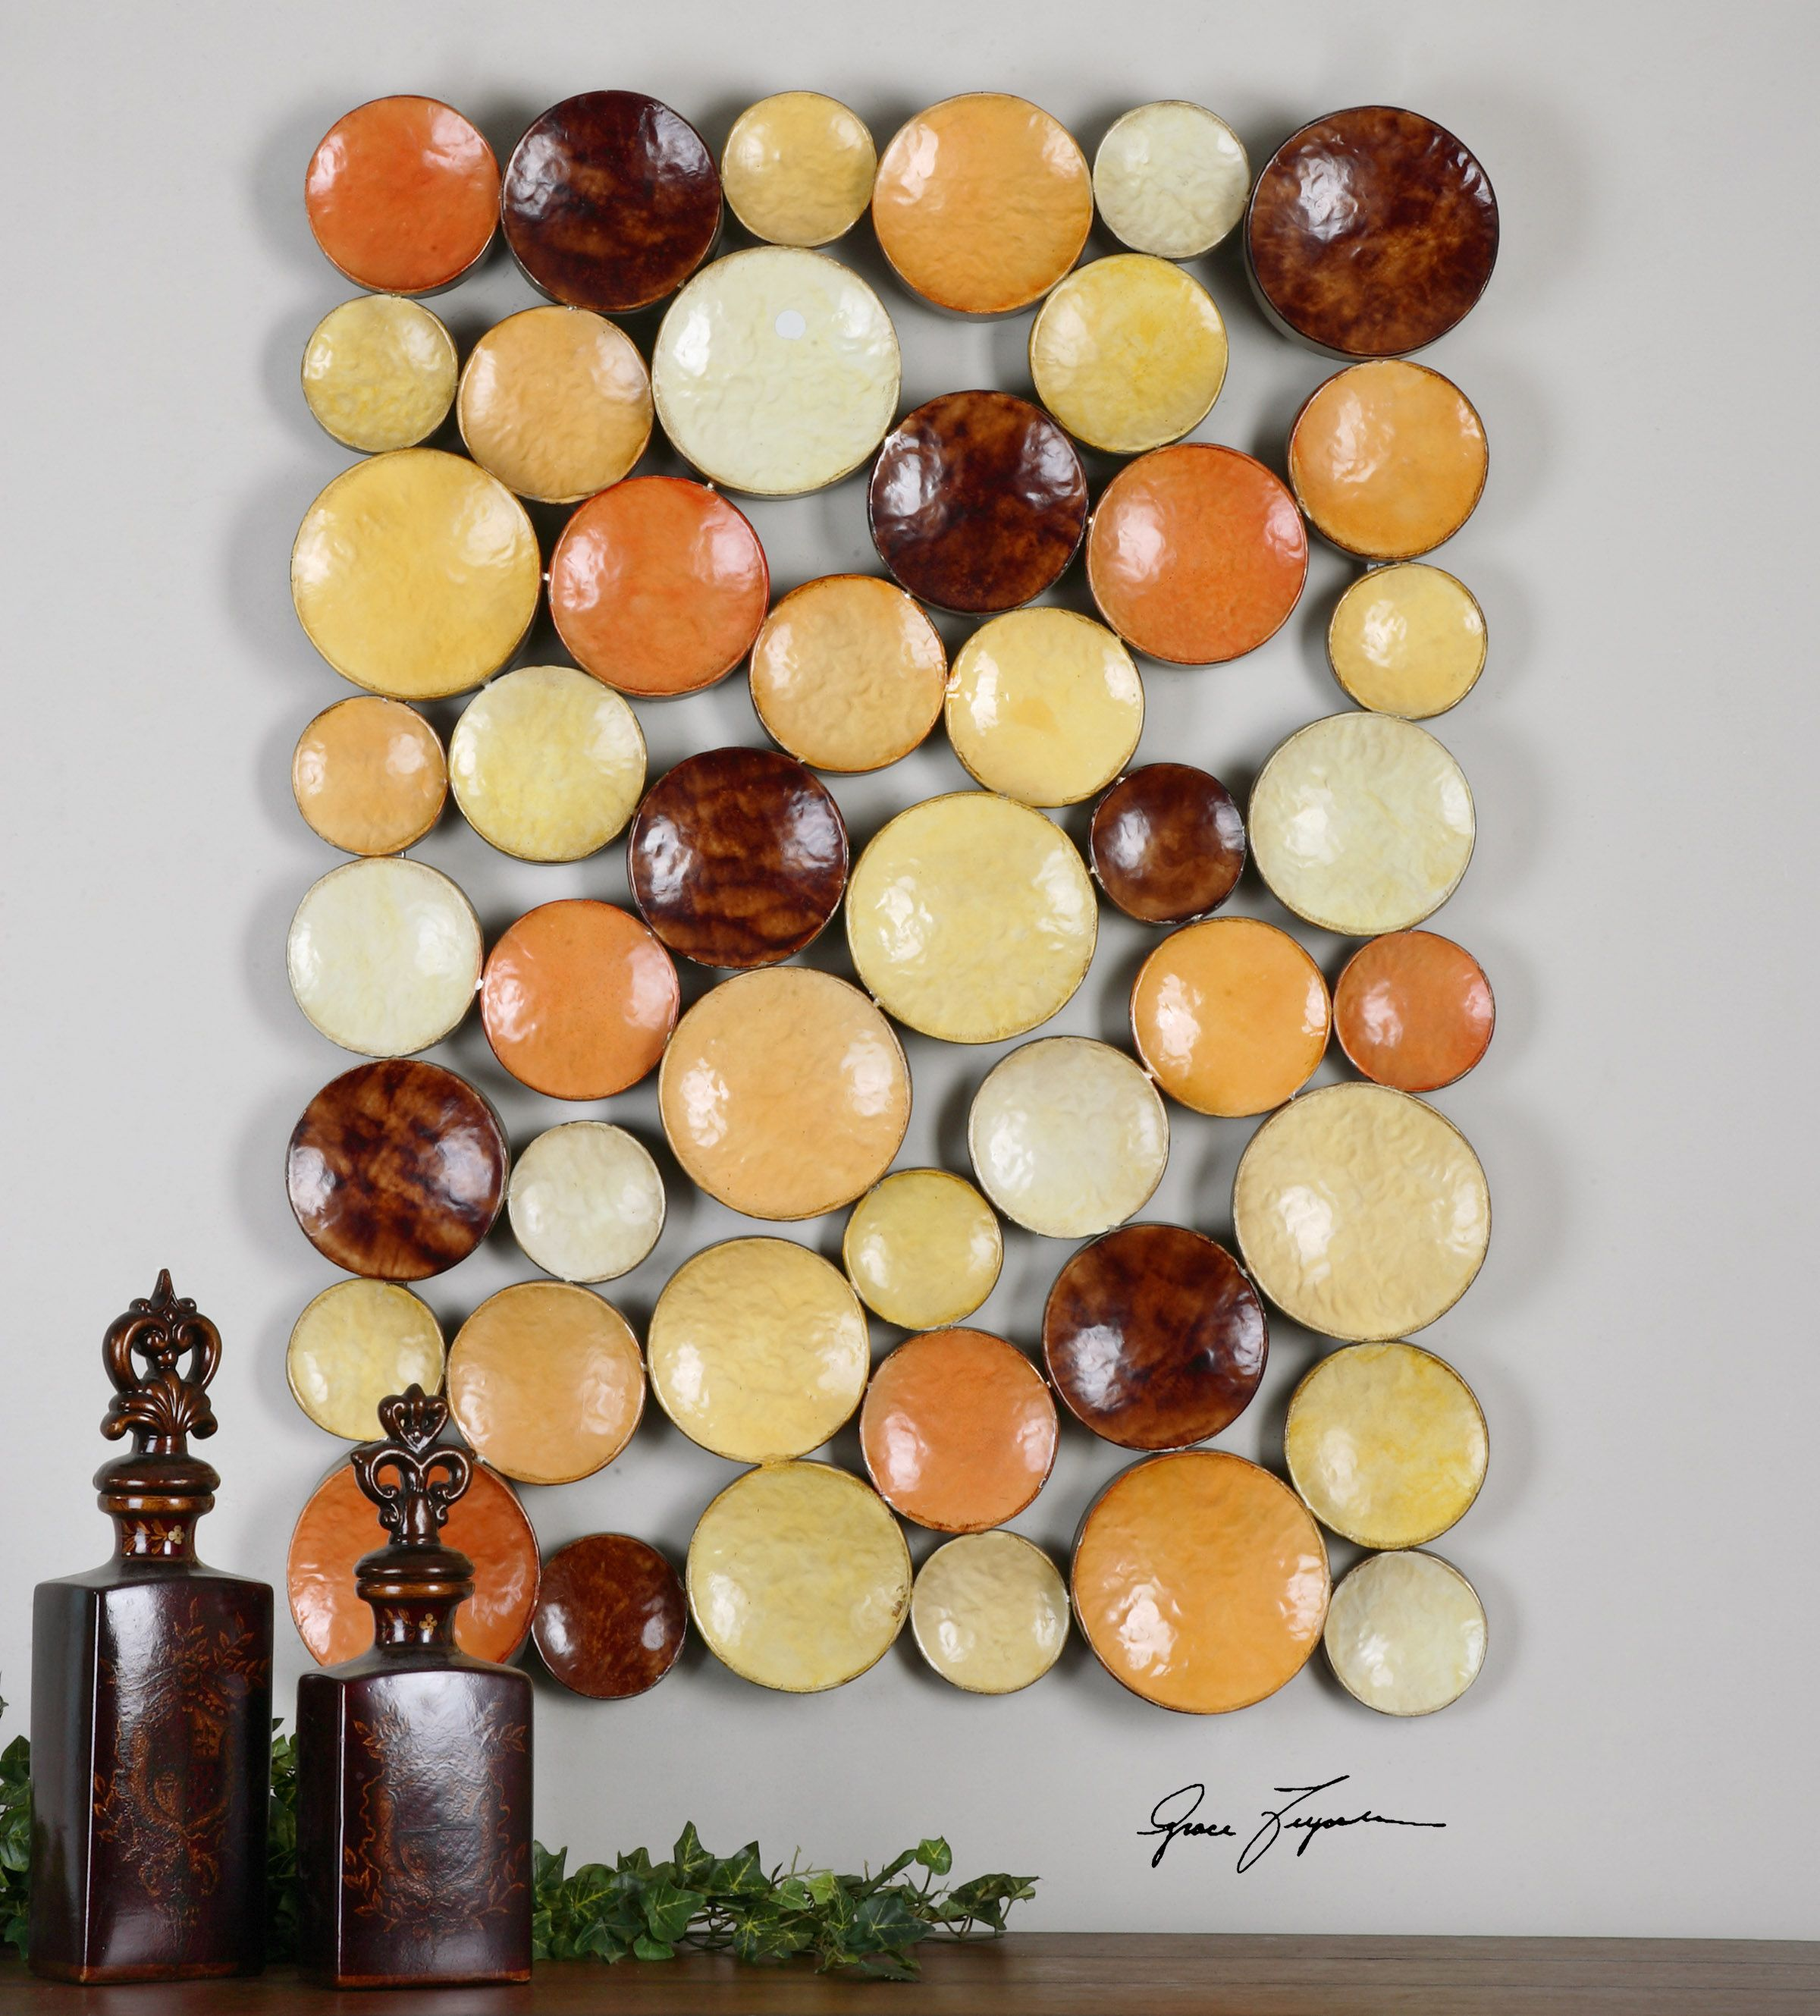 Uttermost Amadeo Disk Wall Art | DECOR: Wall Hangings | Pinterest ...